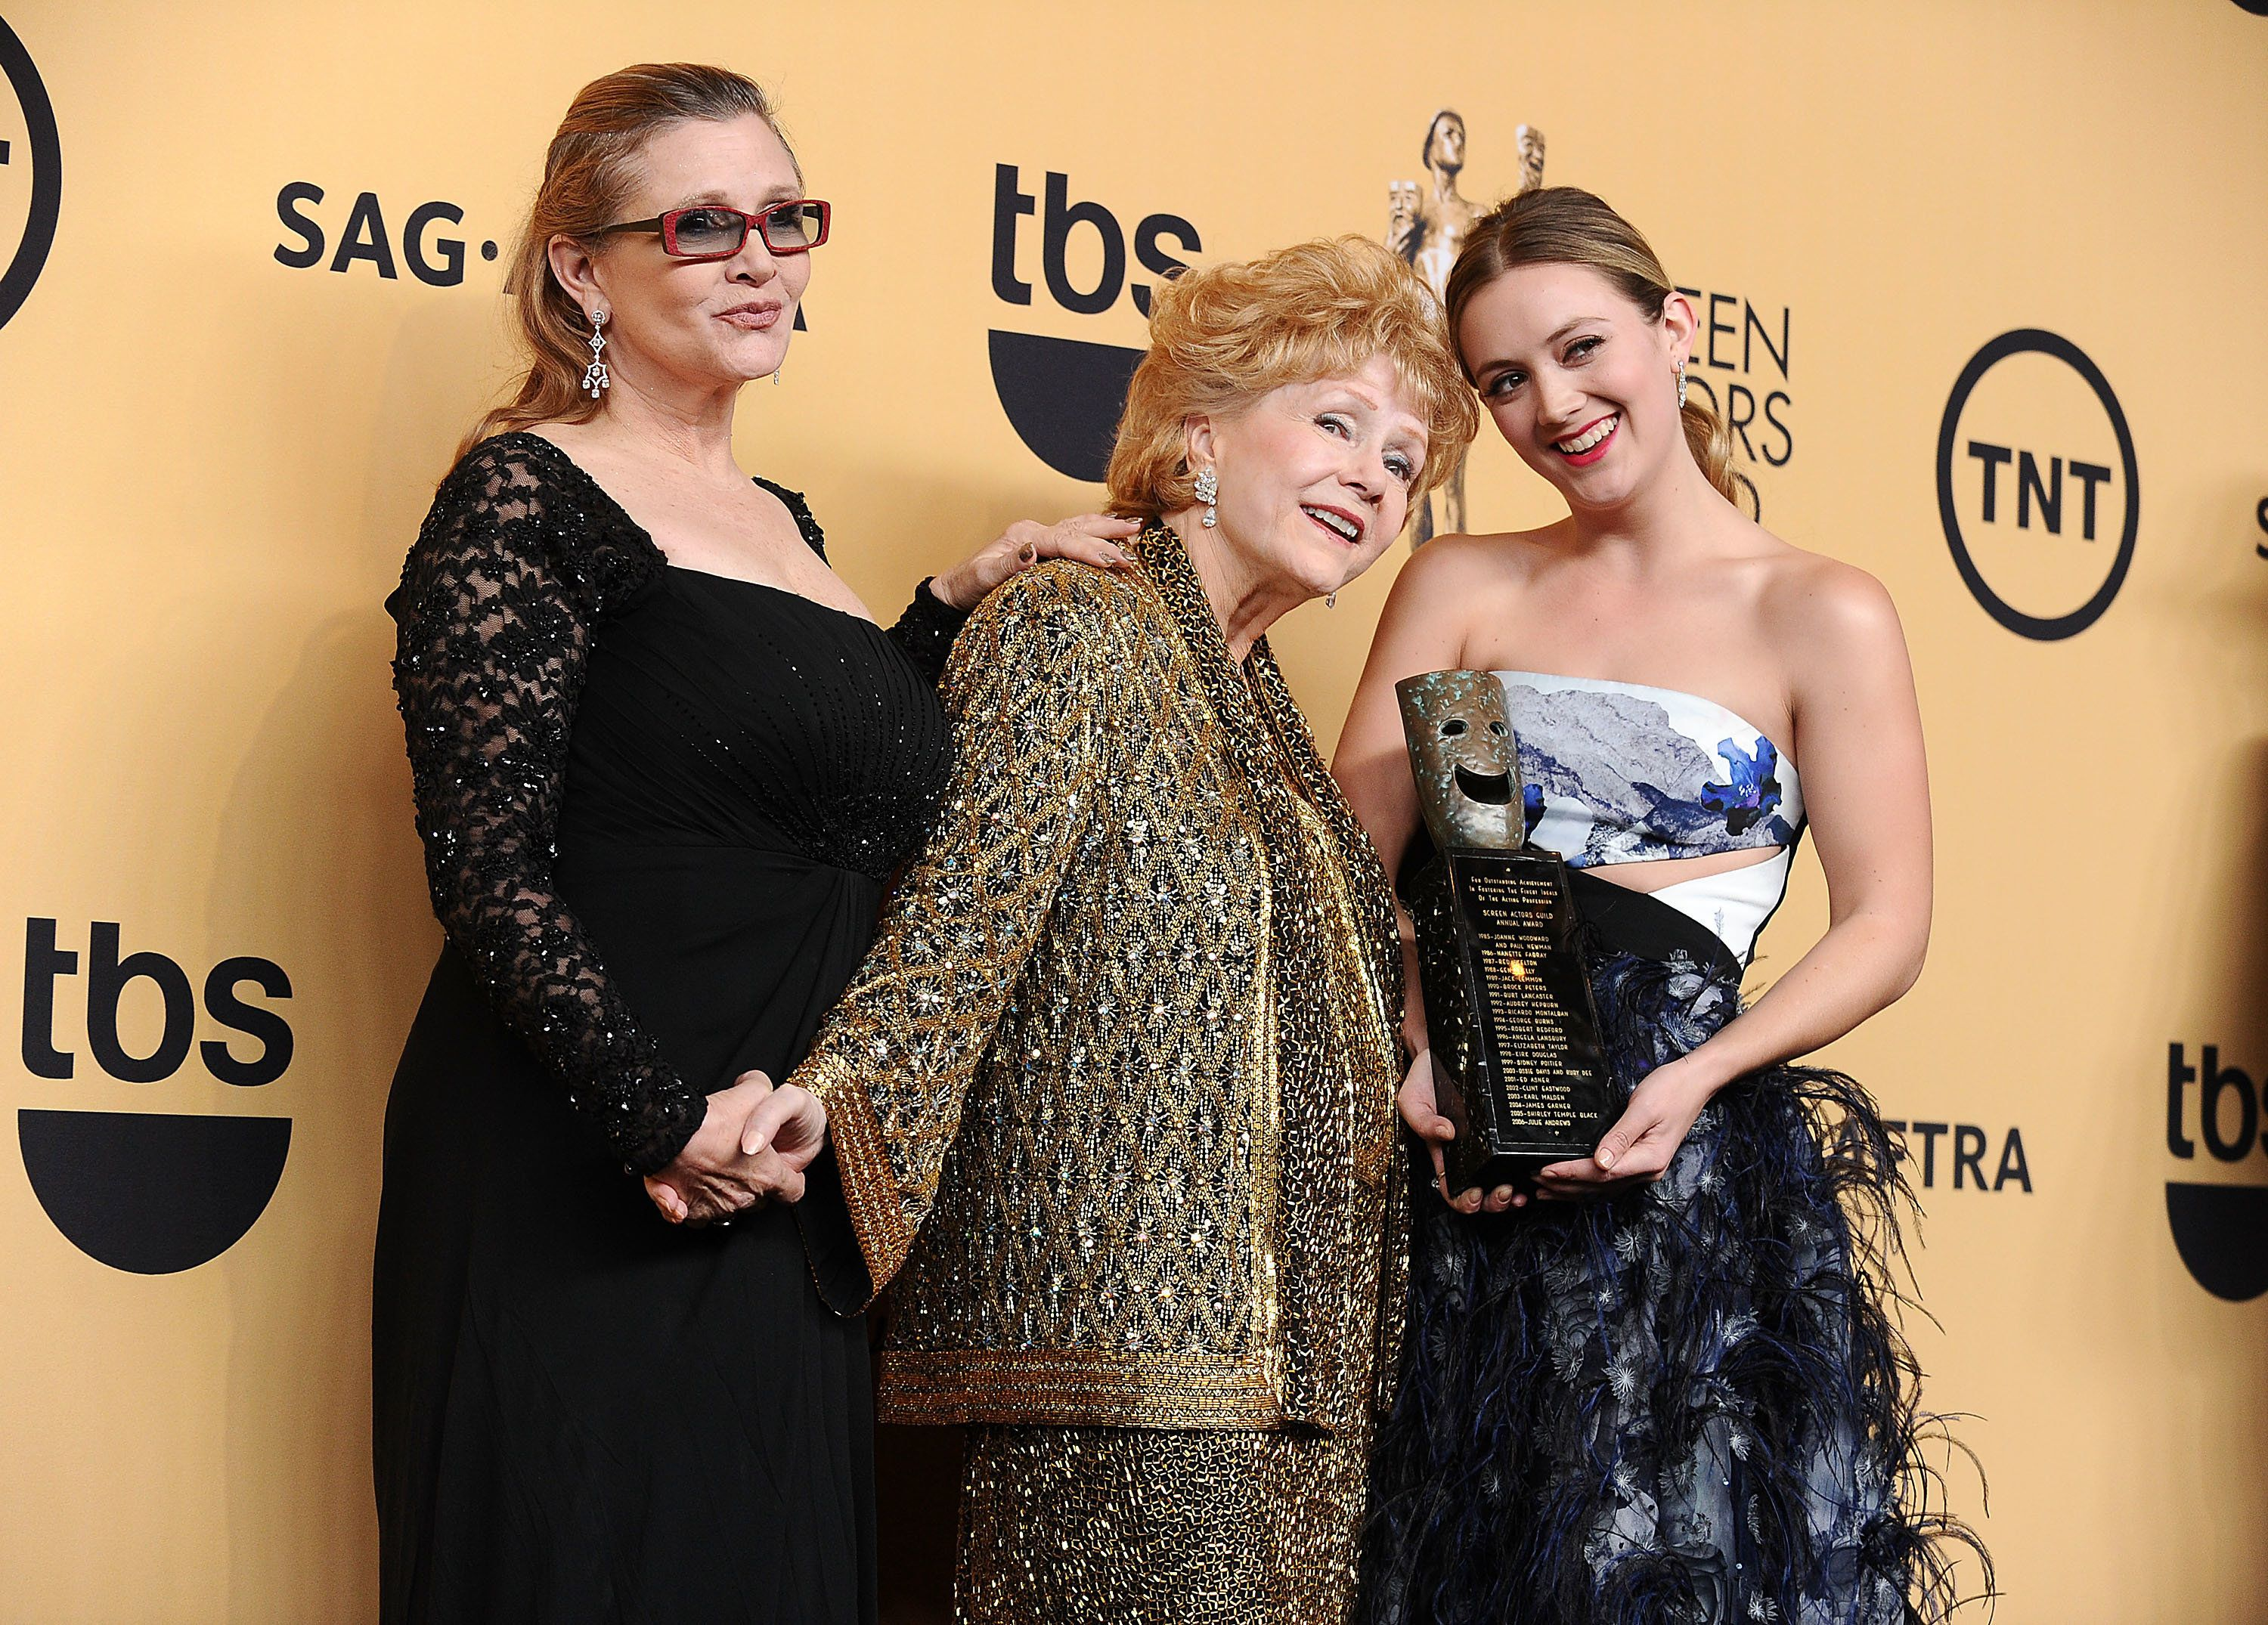 LOS ANGELES, CA - JANUARY 25:  (L-R) Actress Debbie Reynolds, actress Carrie Fisher and Billie Lourd pose in the press room at the 21st annual Screen Actors Guild Awards at The Shrine Auditorium on January 25, 2015 in Los Angeles, California.  (Photo by Jason LaVeris/FilmMagic)